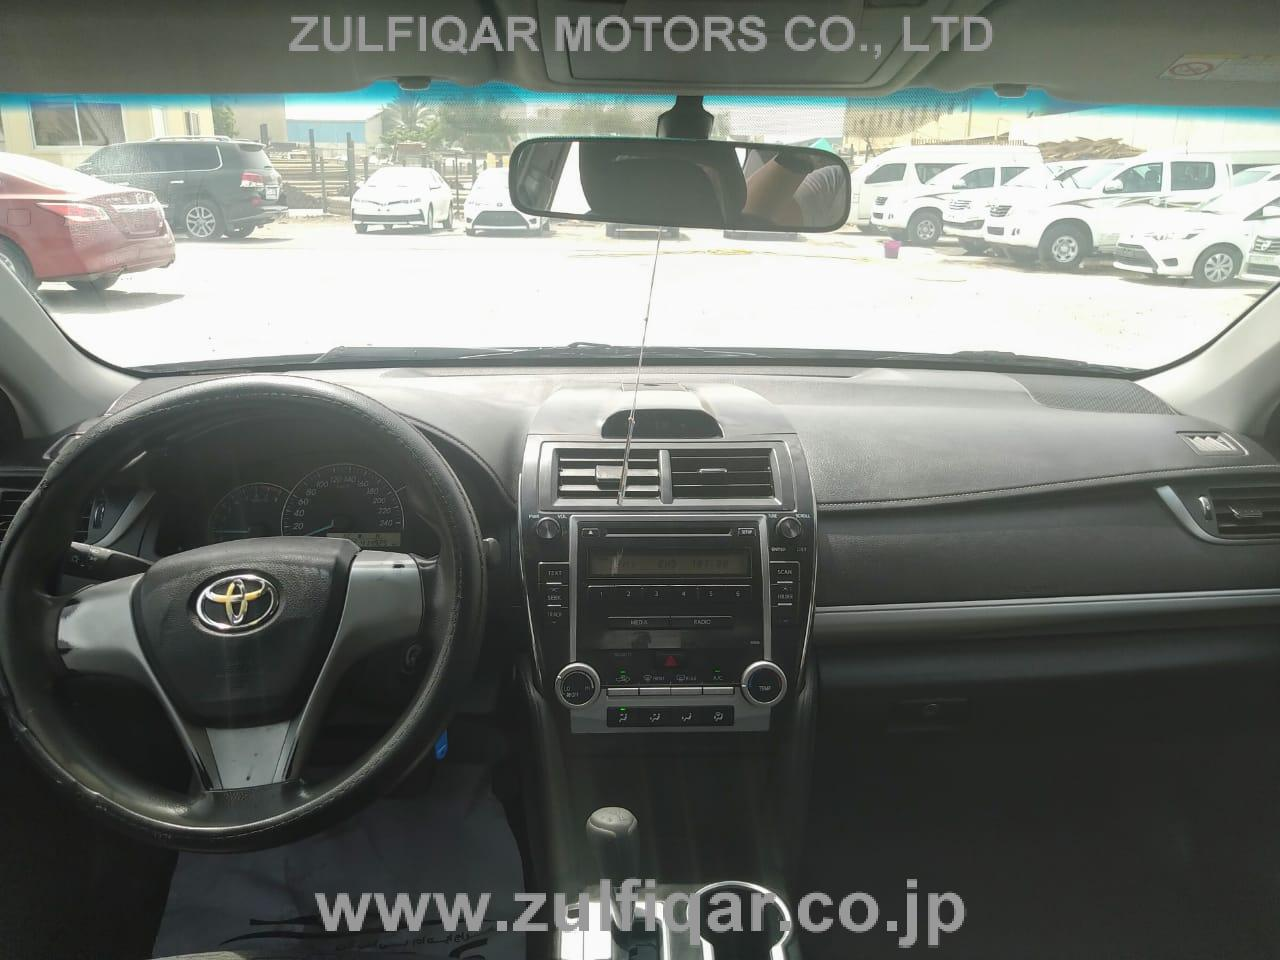 TOYOTA CAMRY 2014 Image 2